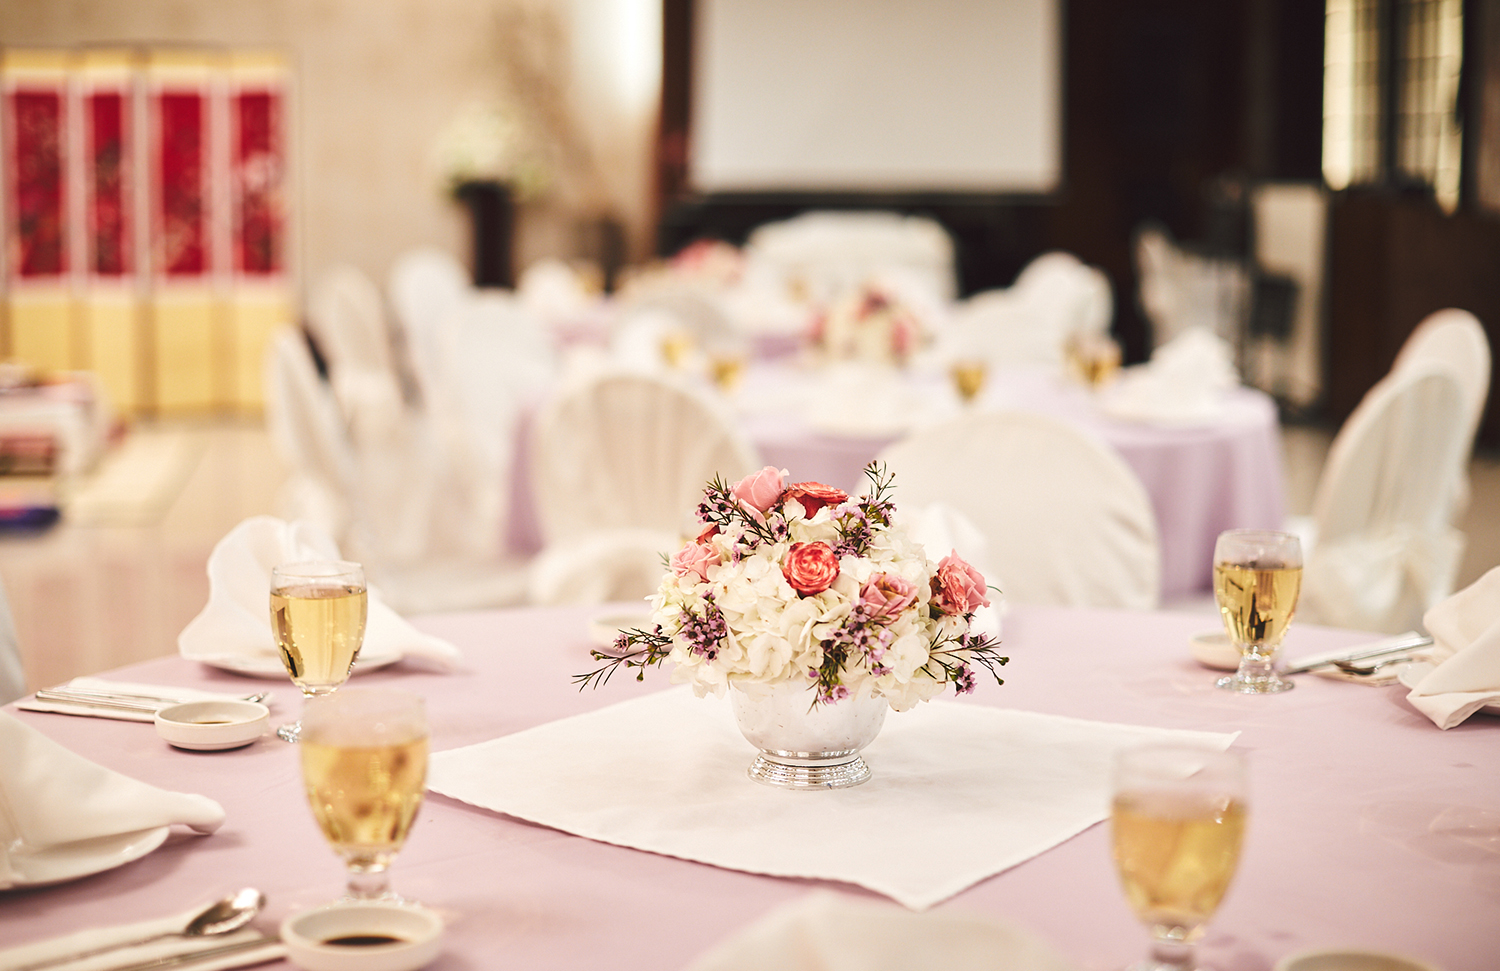 180920_KumGangSanRestaurantQueensPyebaekCeremony_NewYorkWeddingPhotographer_By_BriJohnsonWeddings_0015.jpg